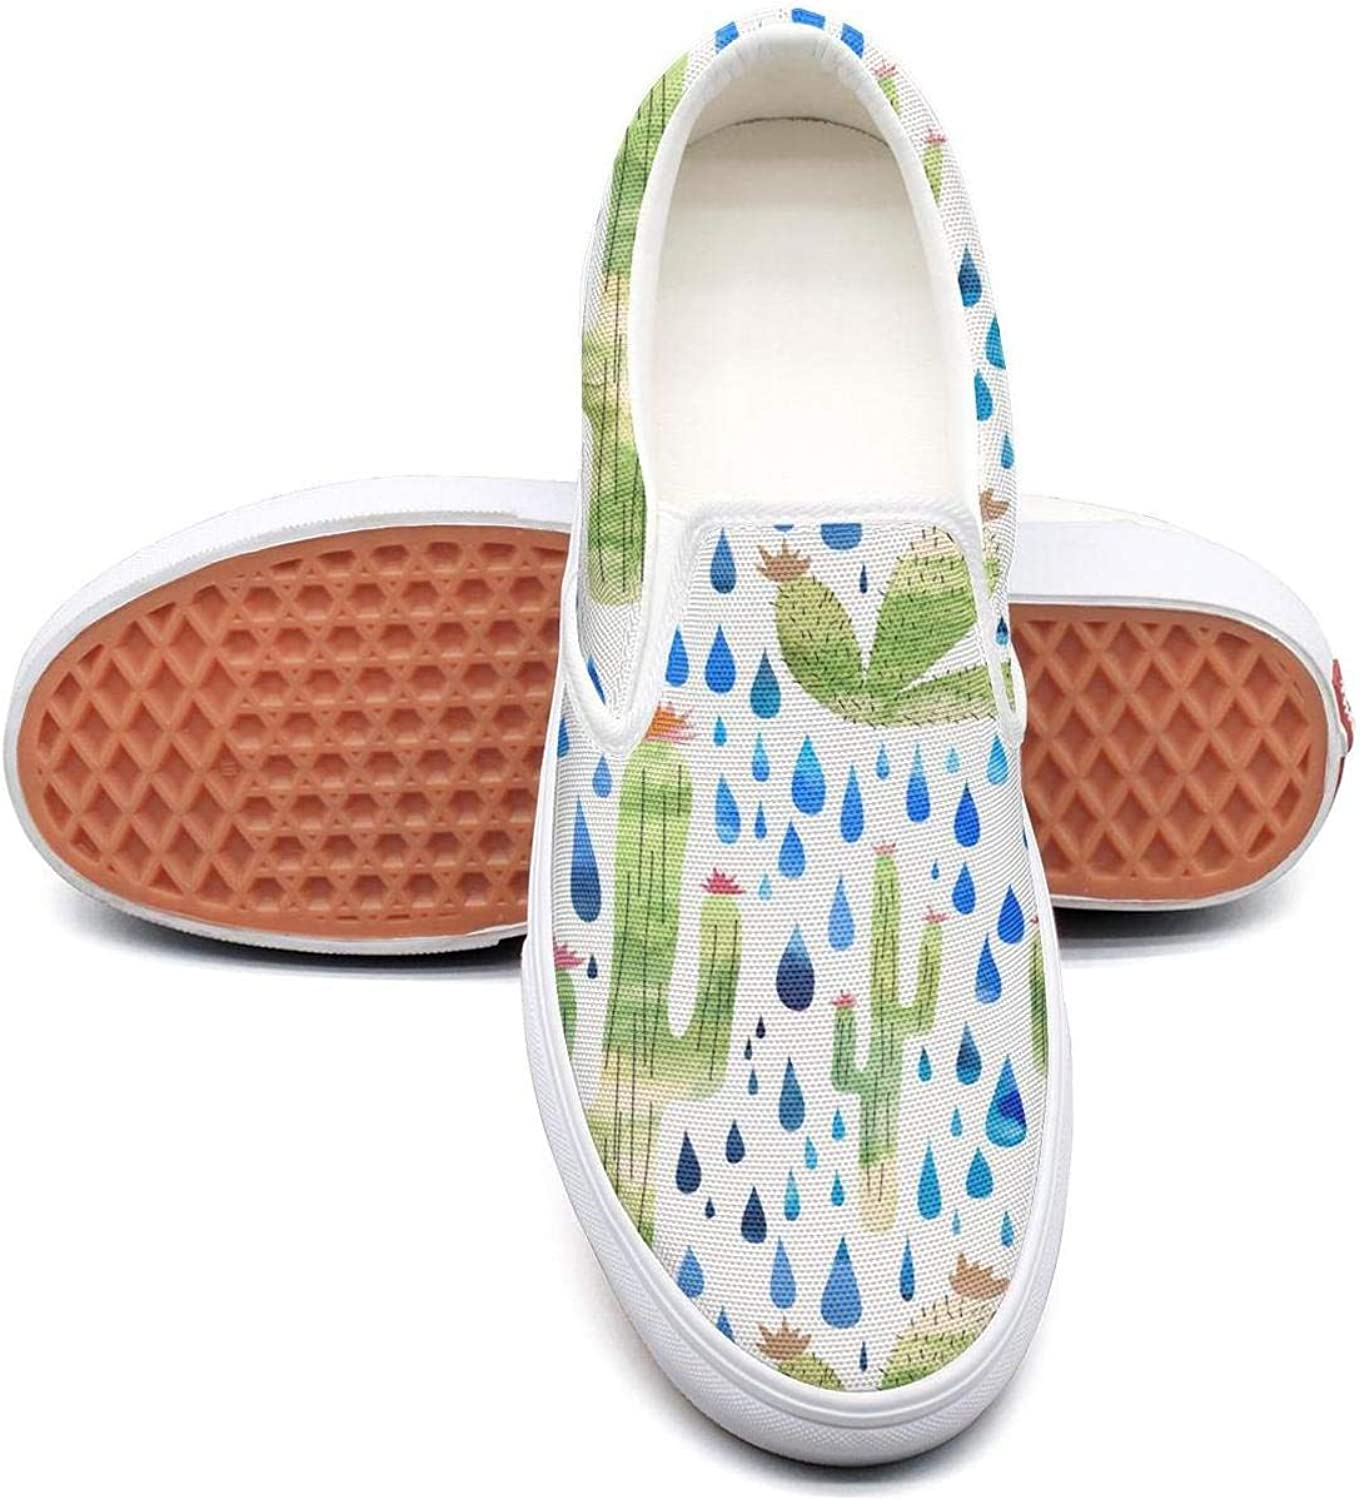 SOFIE MARTIN Real Cactus Cacti Beautiful Women Walking shoes Low Top Lightweight Wear-Resistant